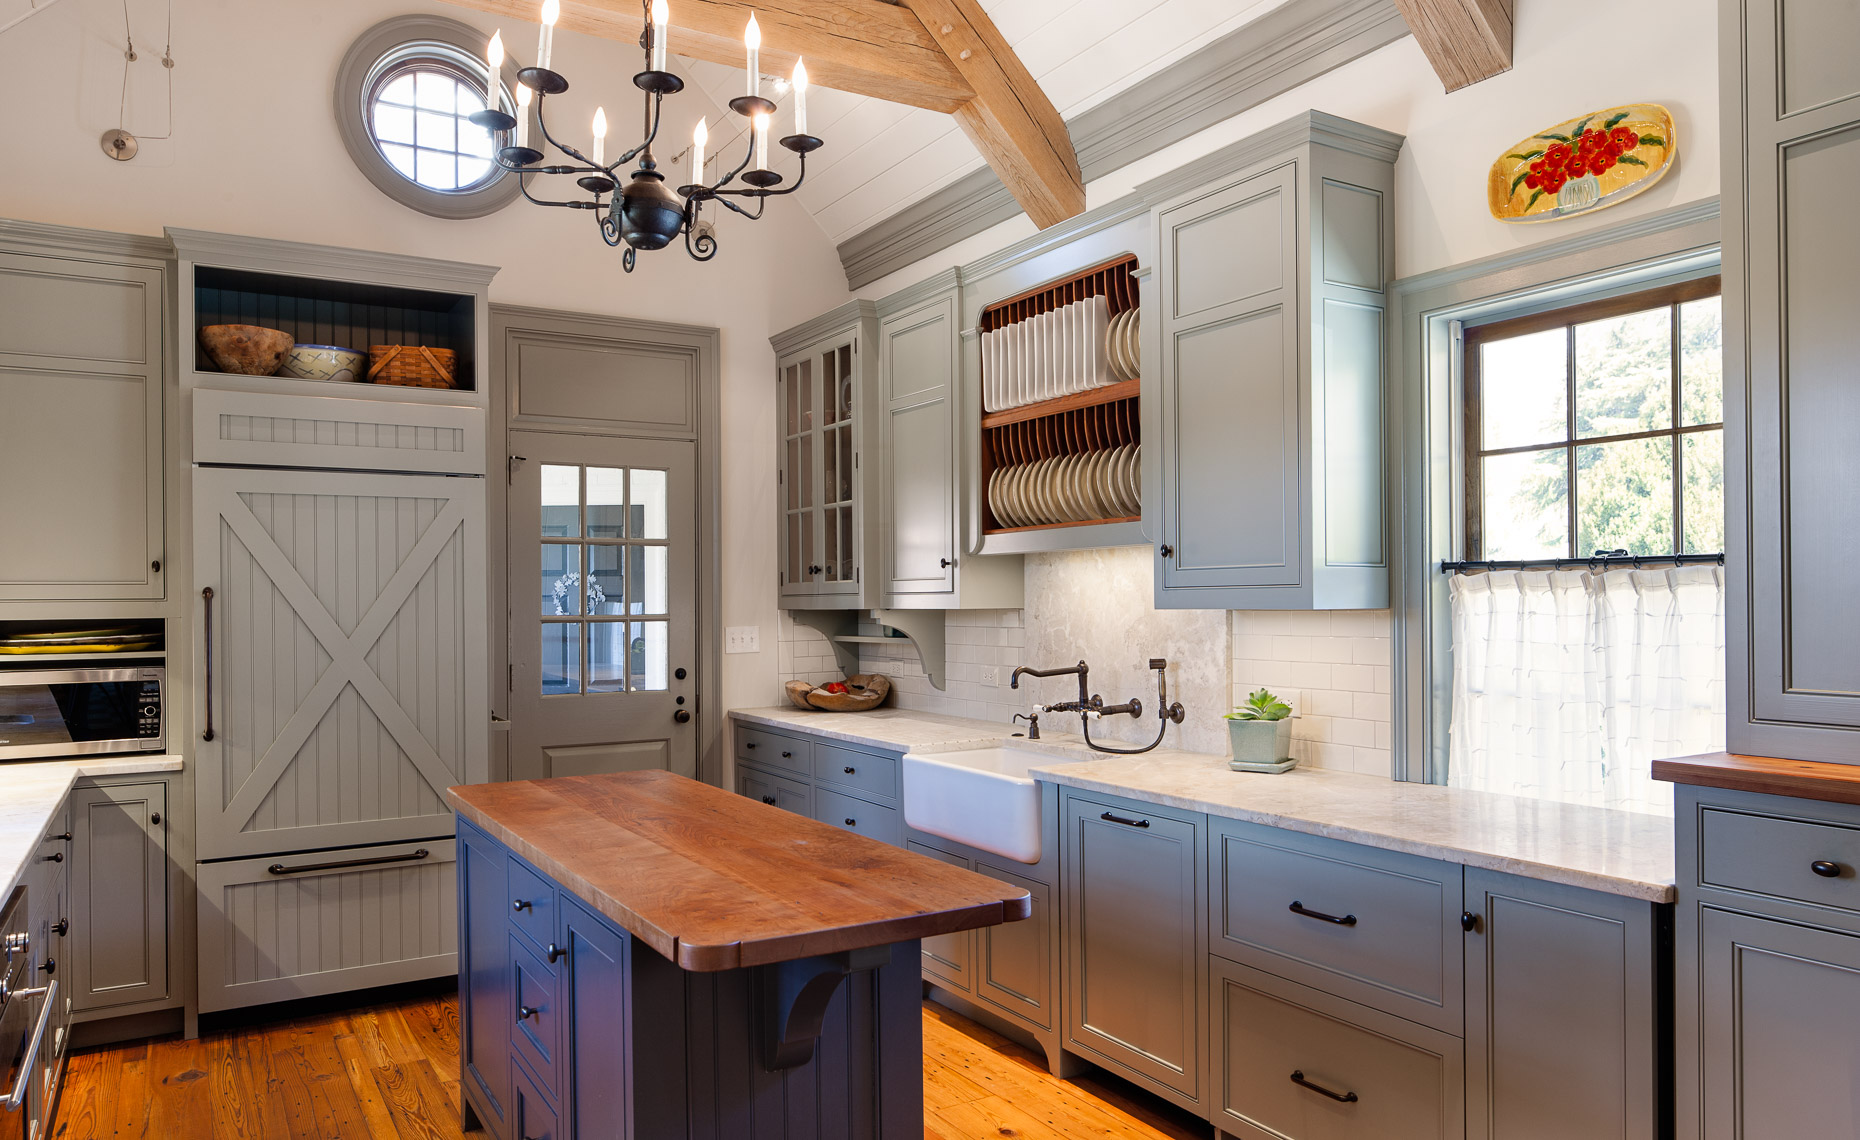 Virginia Hamrick Photography - Custom Cabinetry by W A Marks Fine Woodworking  Barboursville, VA